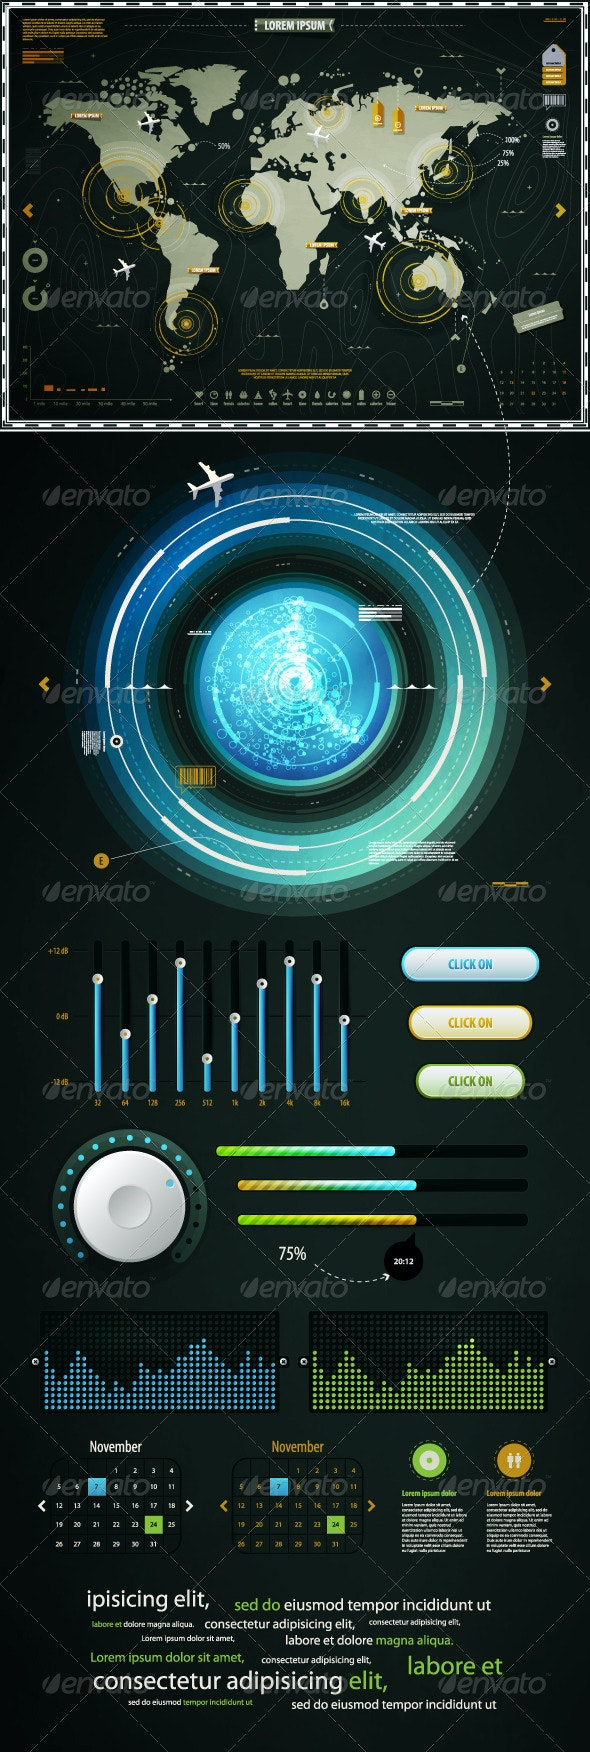 Infographics Elements of the World Map, and EQ